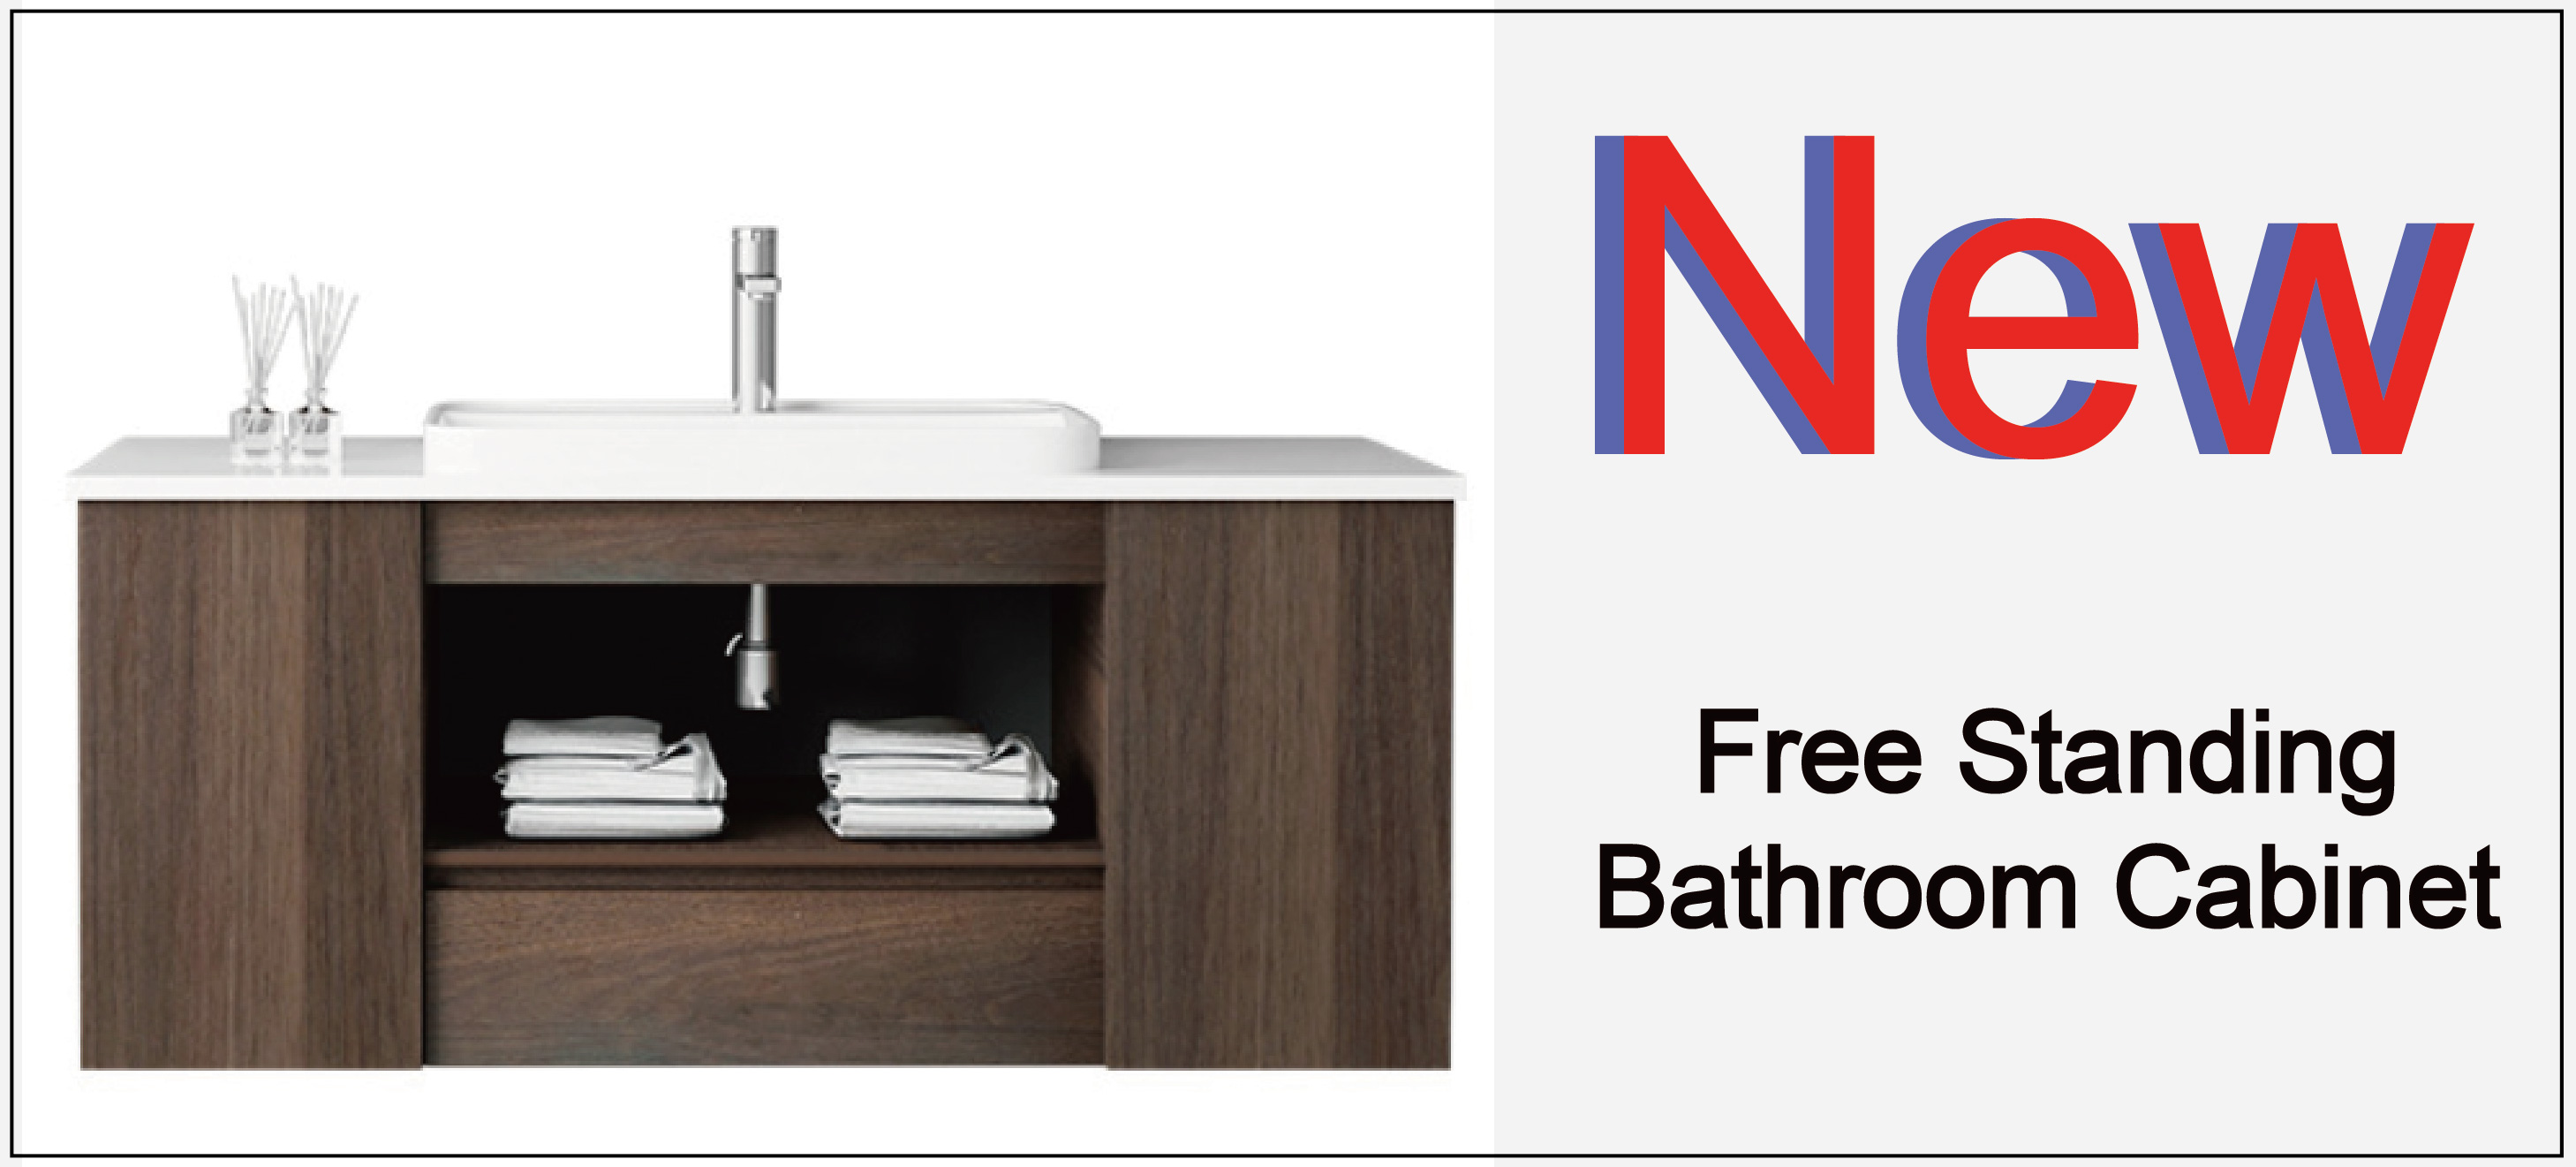 Entop Bathroom Cabinet Products